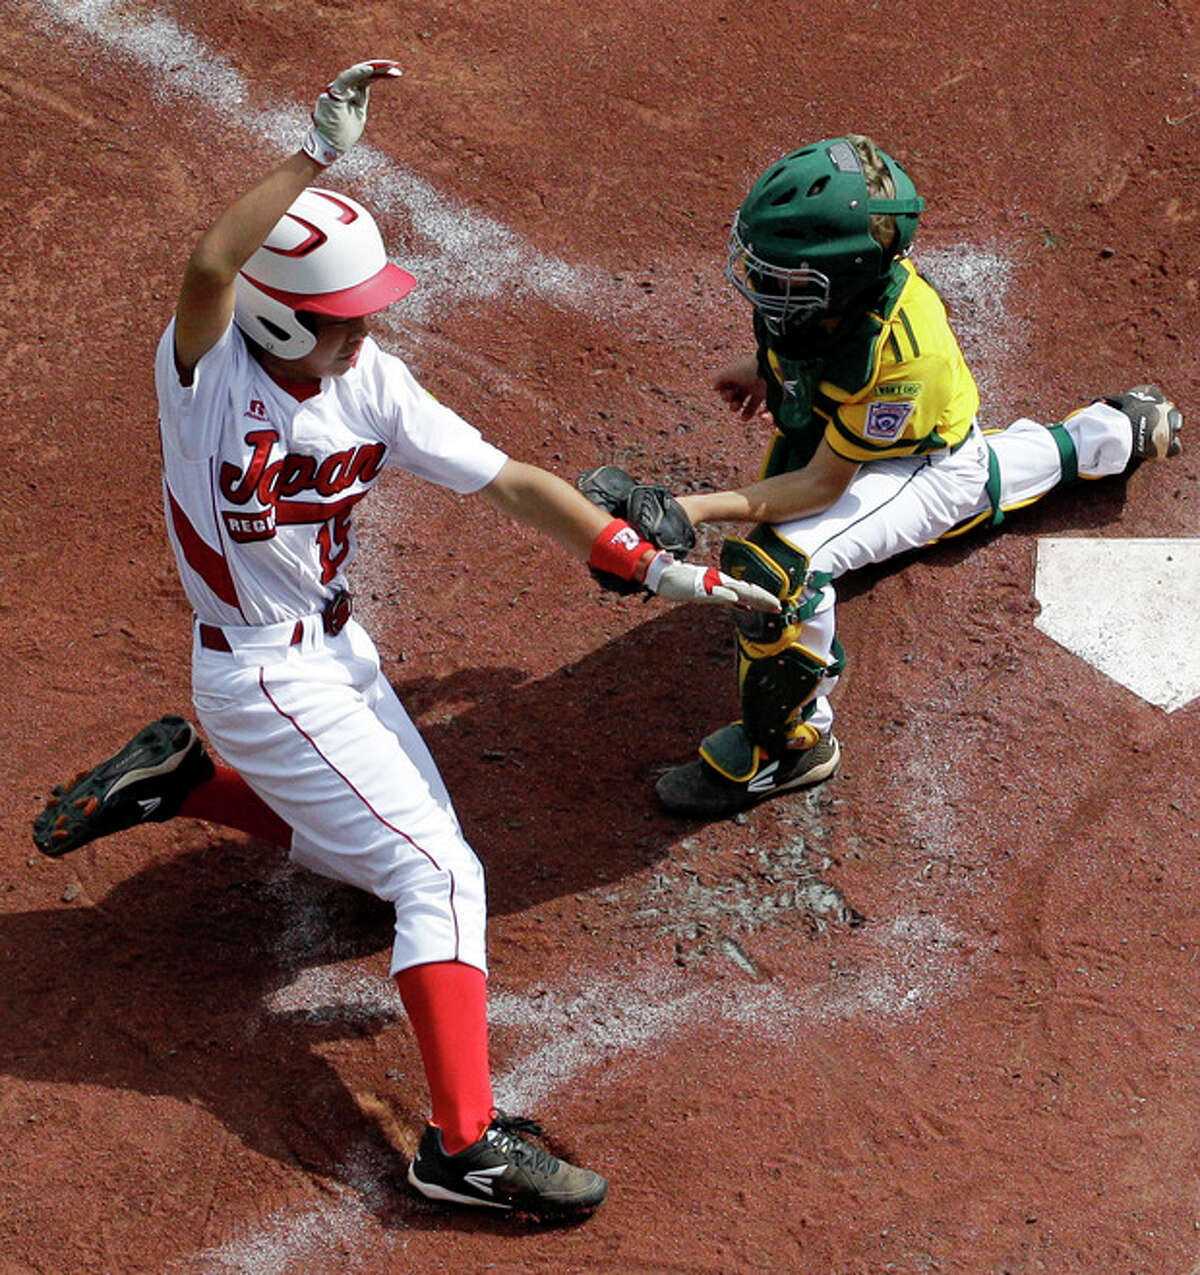 Tokyo, Japan's Takuma Gomi (15) is tagged out by Chula Vista, Calif., catcher Patrick Archer, right, while attempting to score on a wild pitch in the first inning of the Little League World Series Championship baseball game in South Williamsport, Pa., Sunday, Aug. 25, 2013. (AP Photo/Gene J. Puskar)